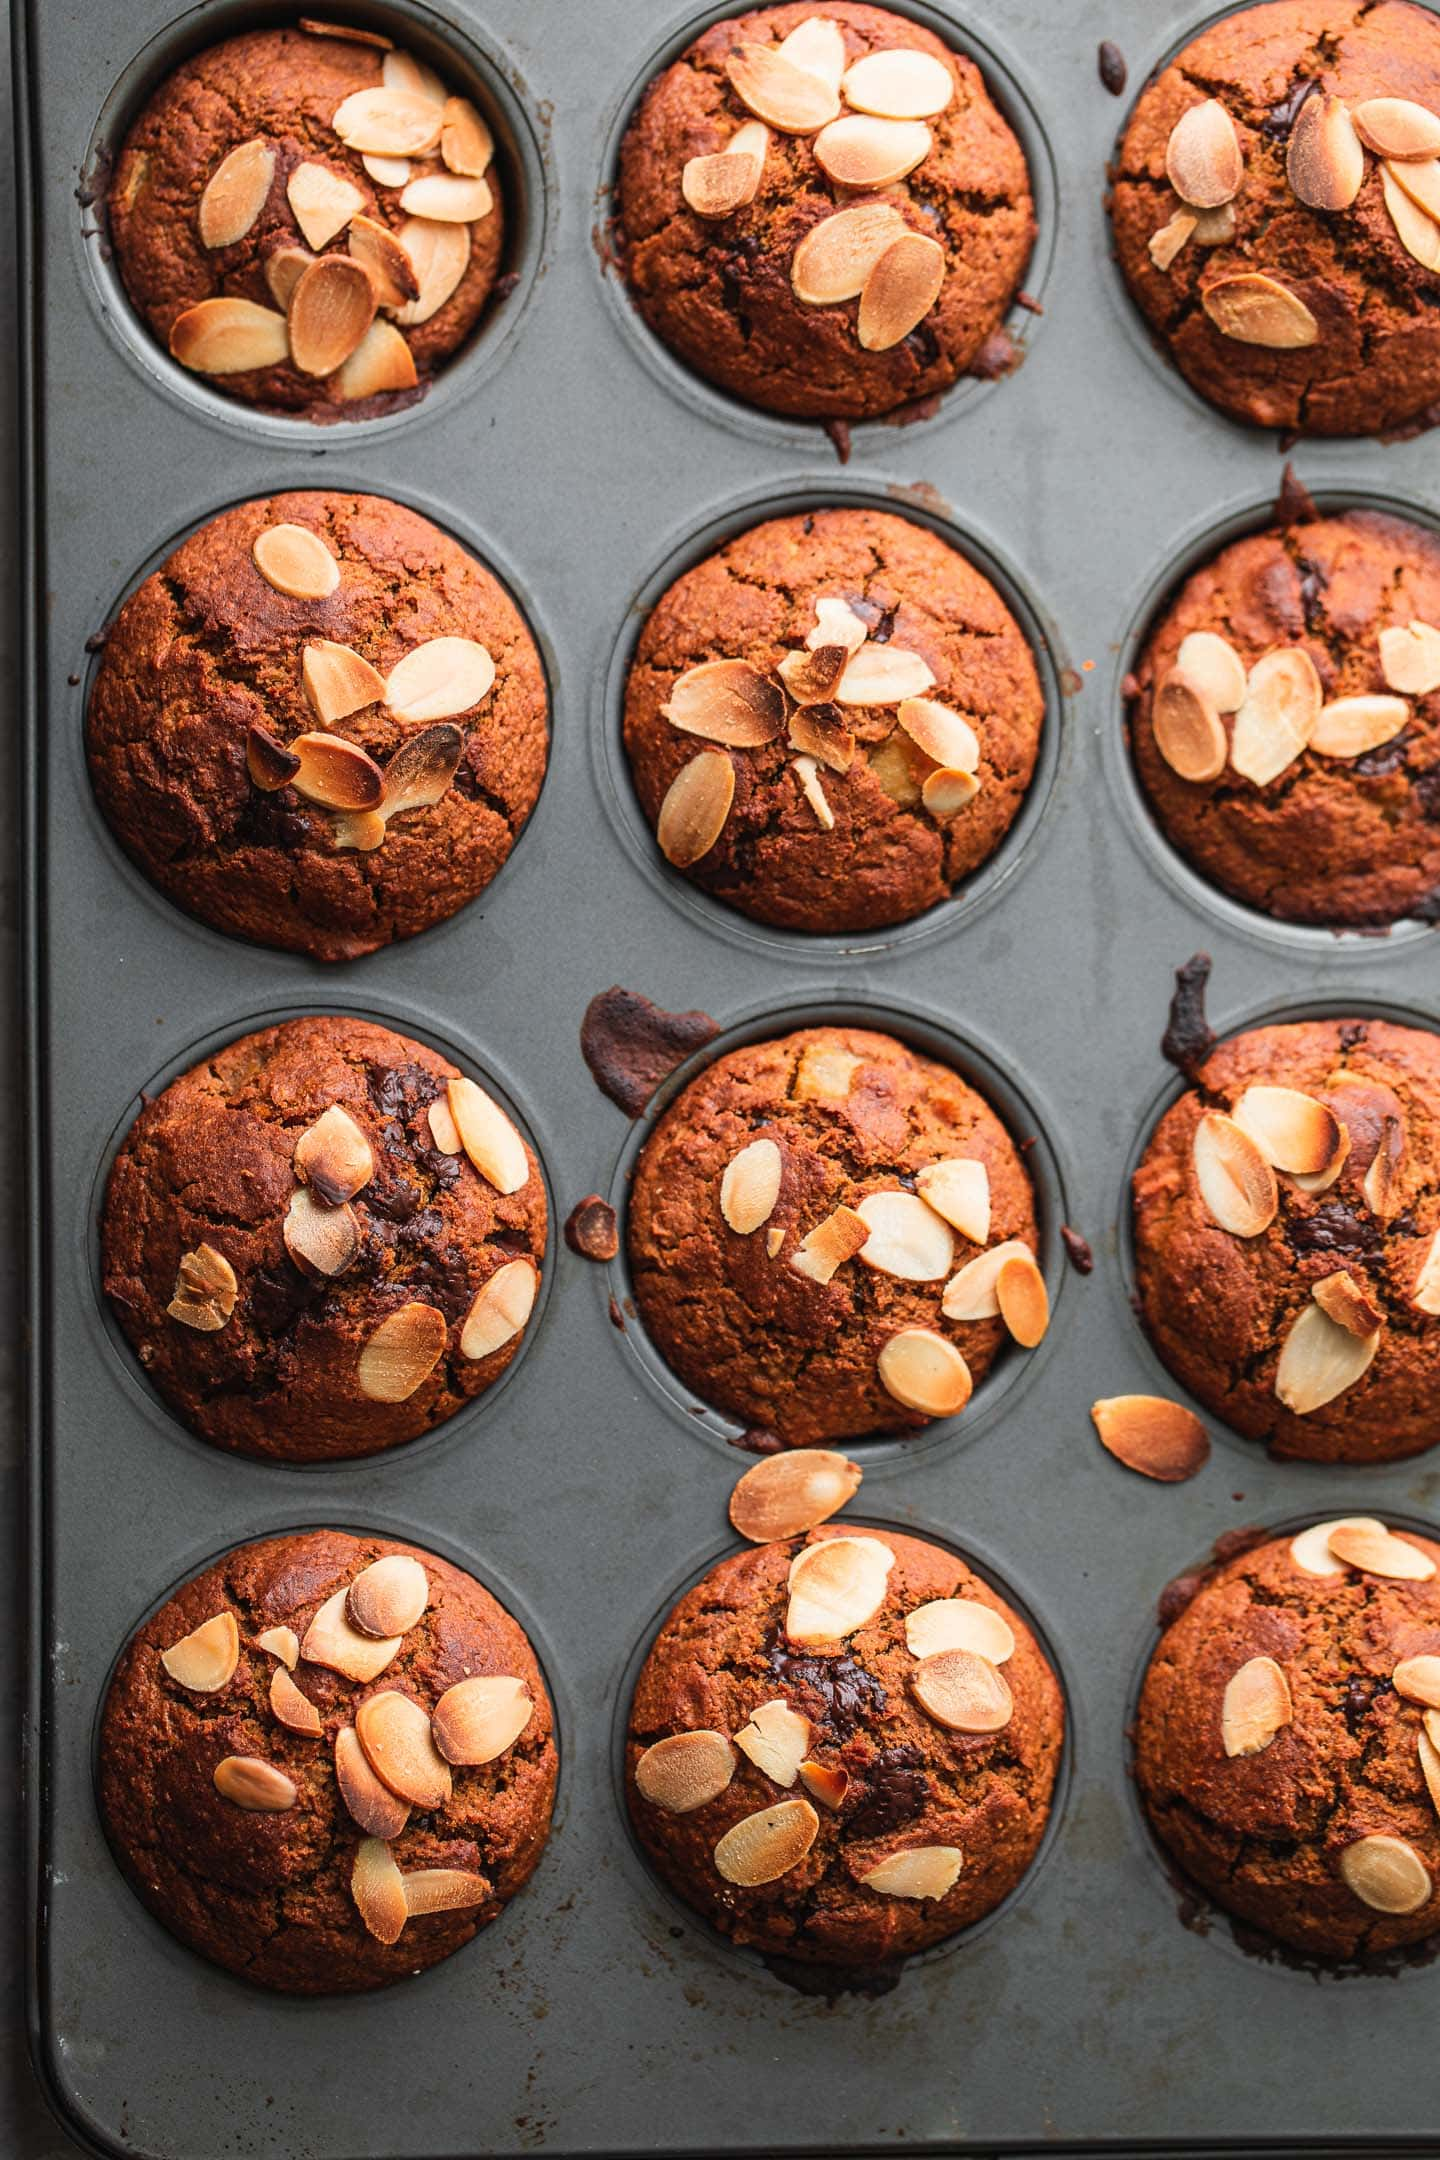 Vegan muffins in a tray